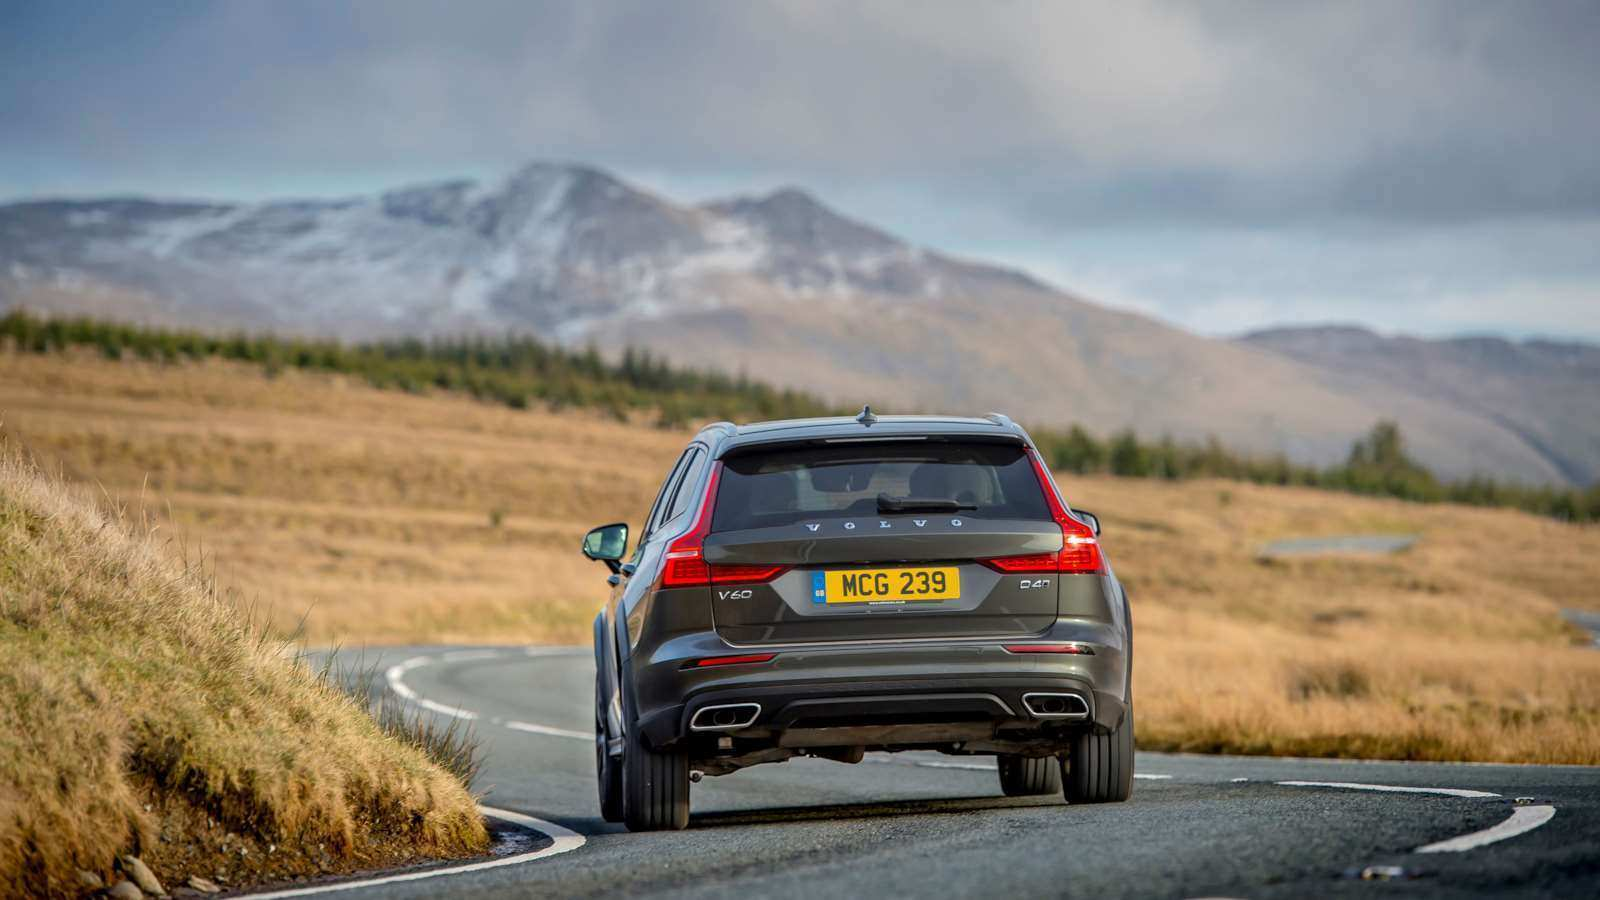 52 The Best 2019 Volvo V60 Cross Country Speed Test